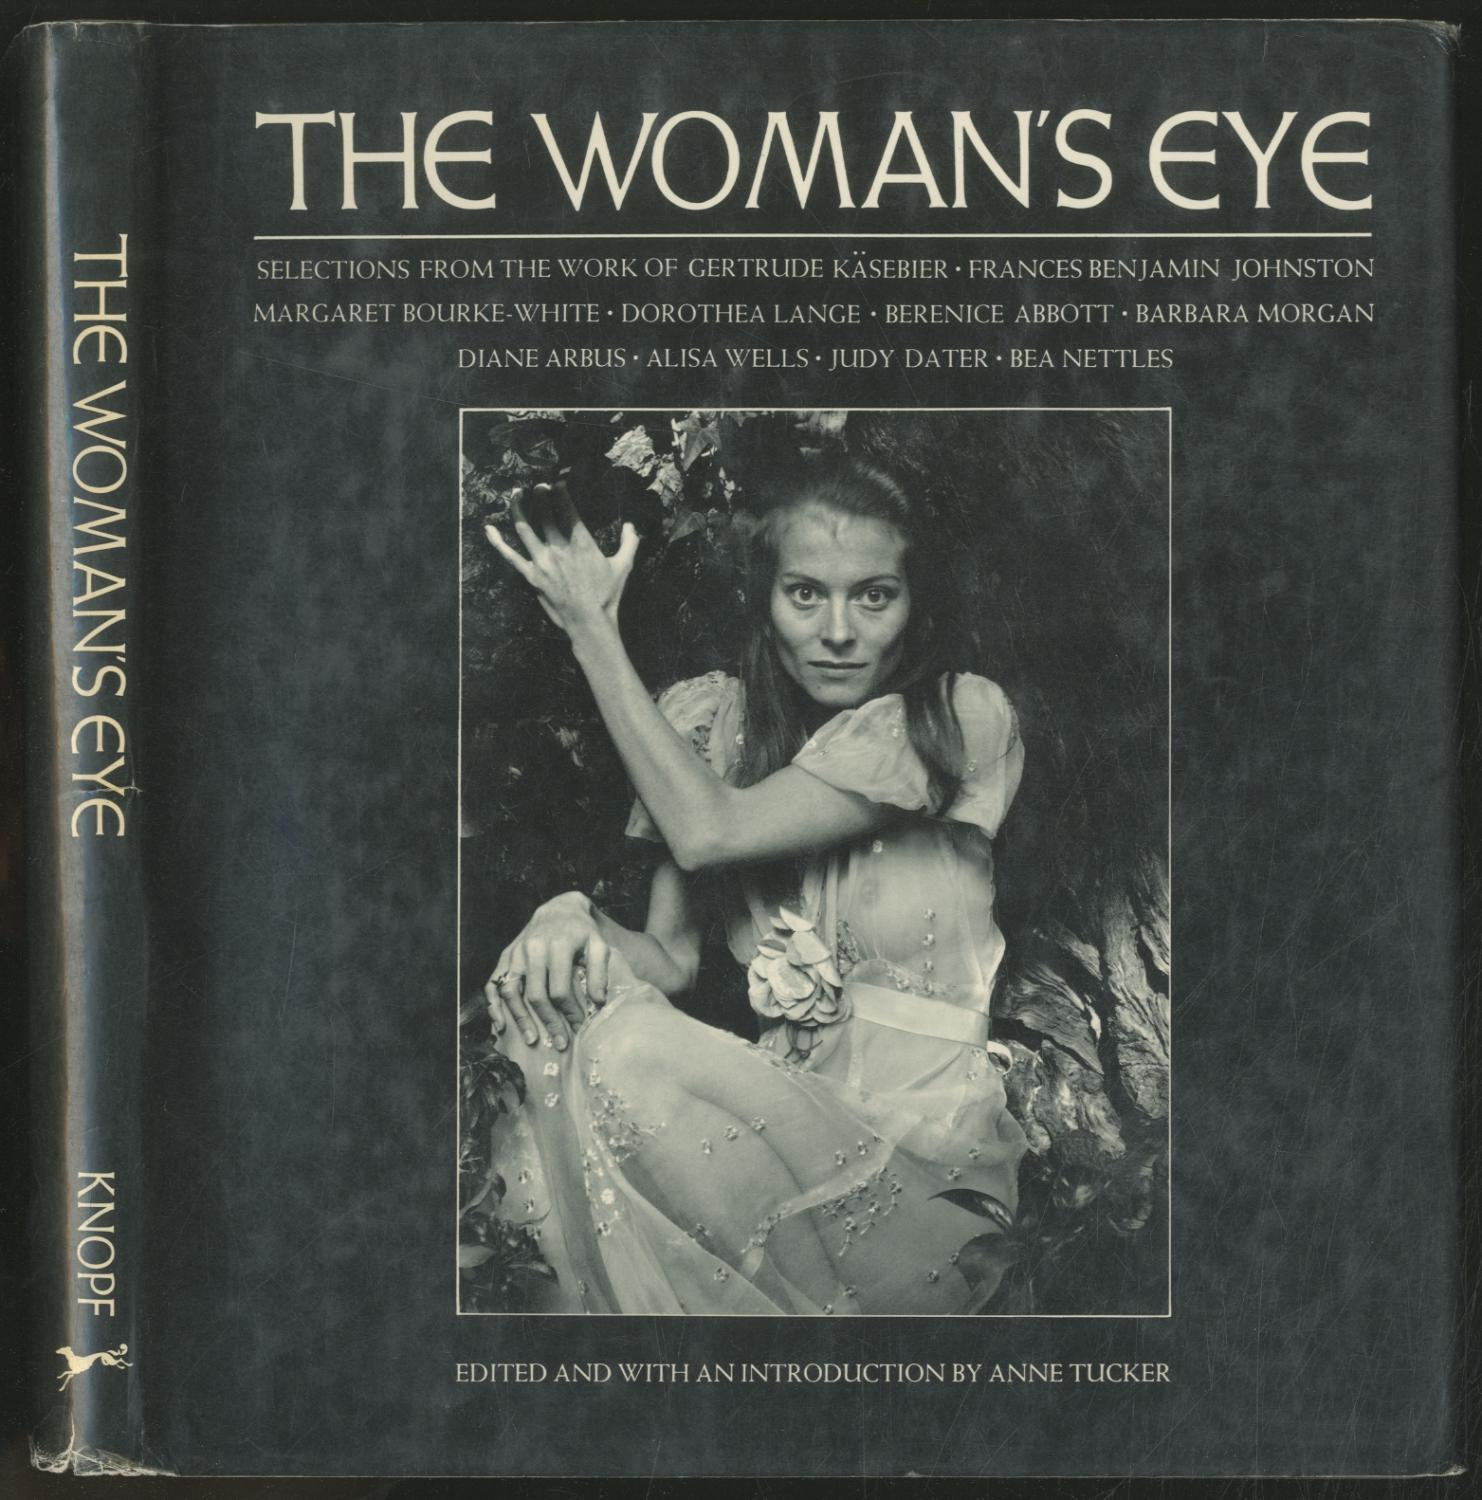 The Woman's Eye - TUCKER, Anne, edited and with an introduction by